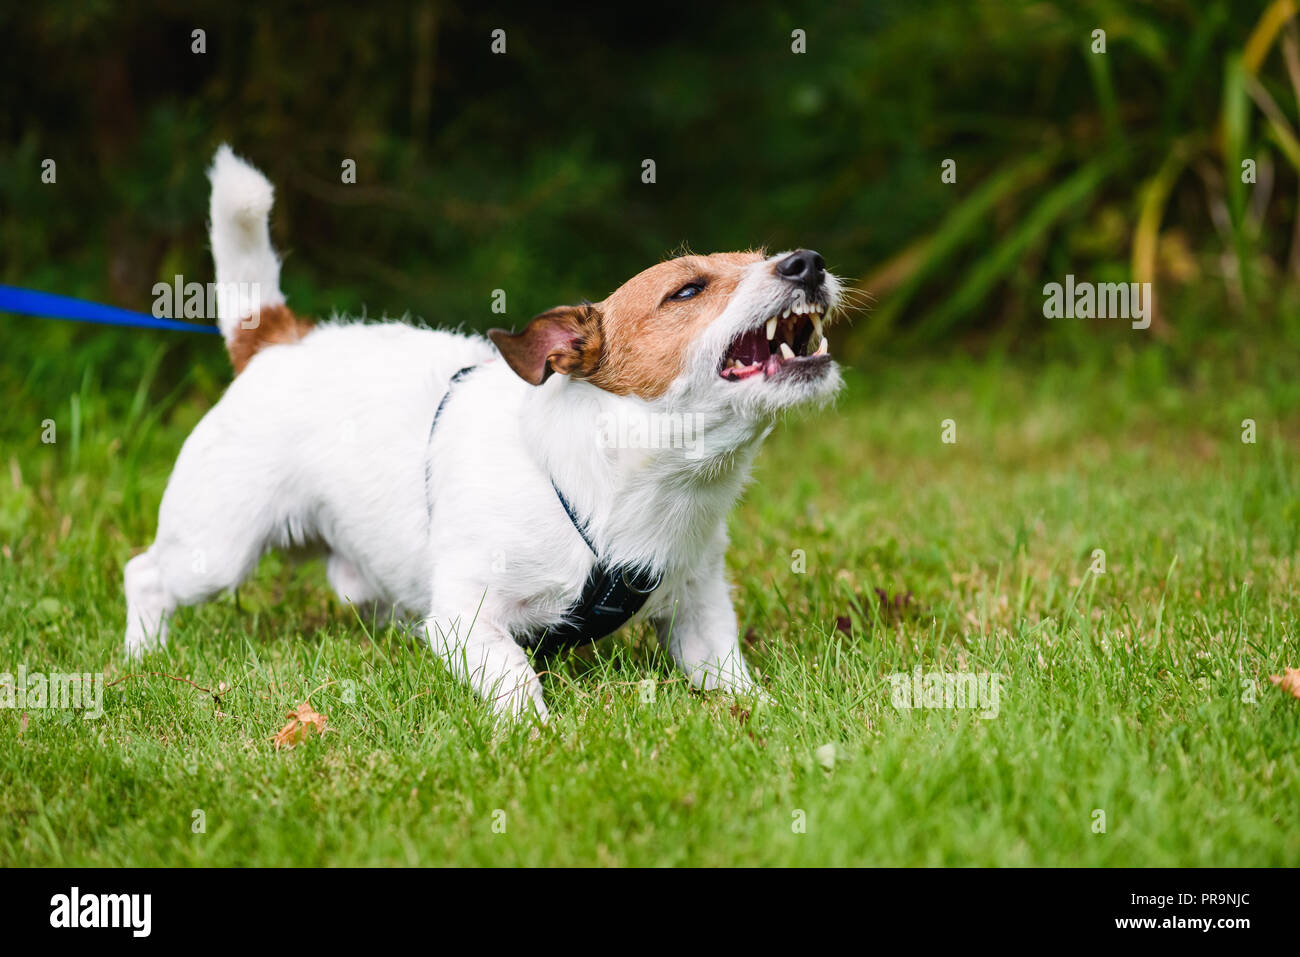 Angry dog aggressively barking and defending his territory - Stock Image